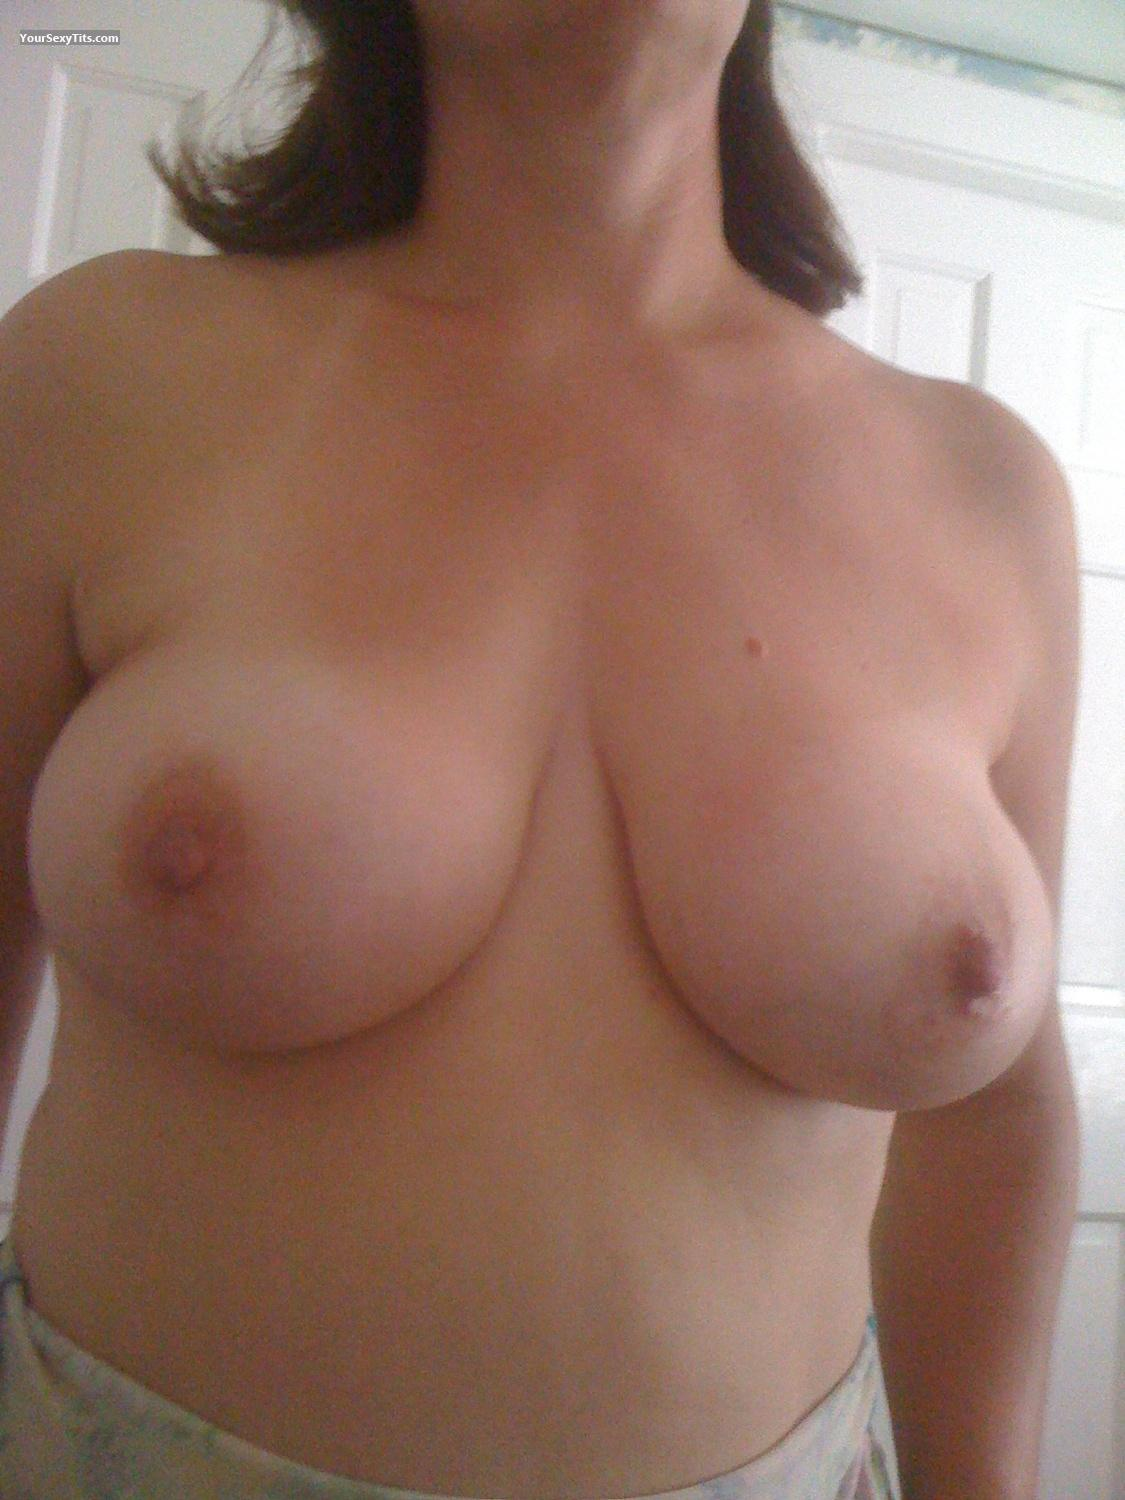 Tit Flash: Big Tits By IPhone - Boobsla from United States